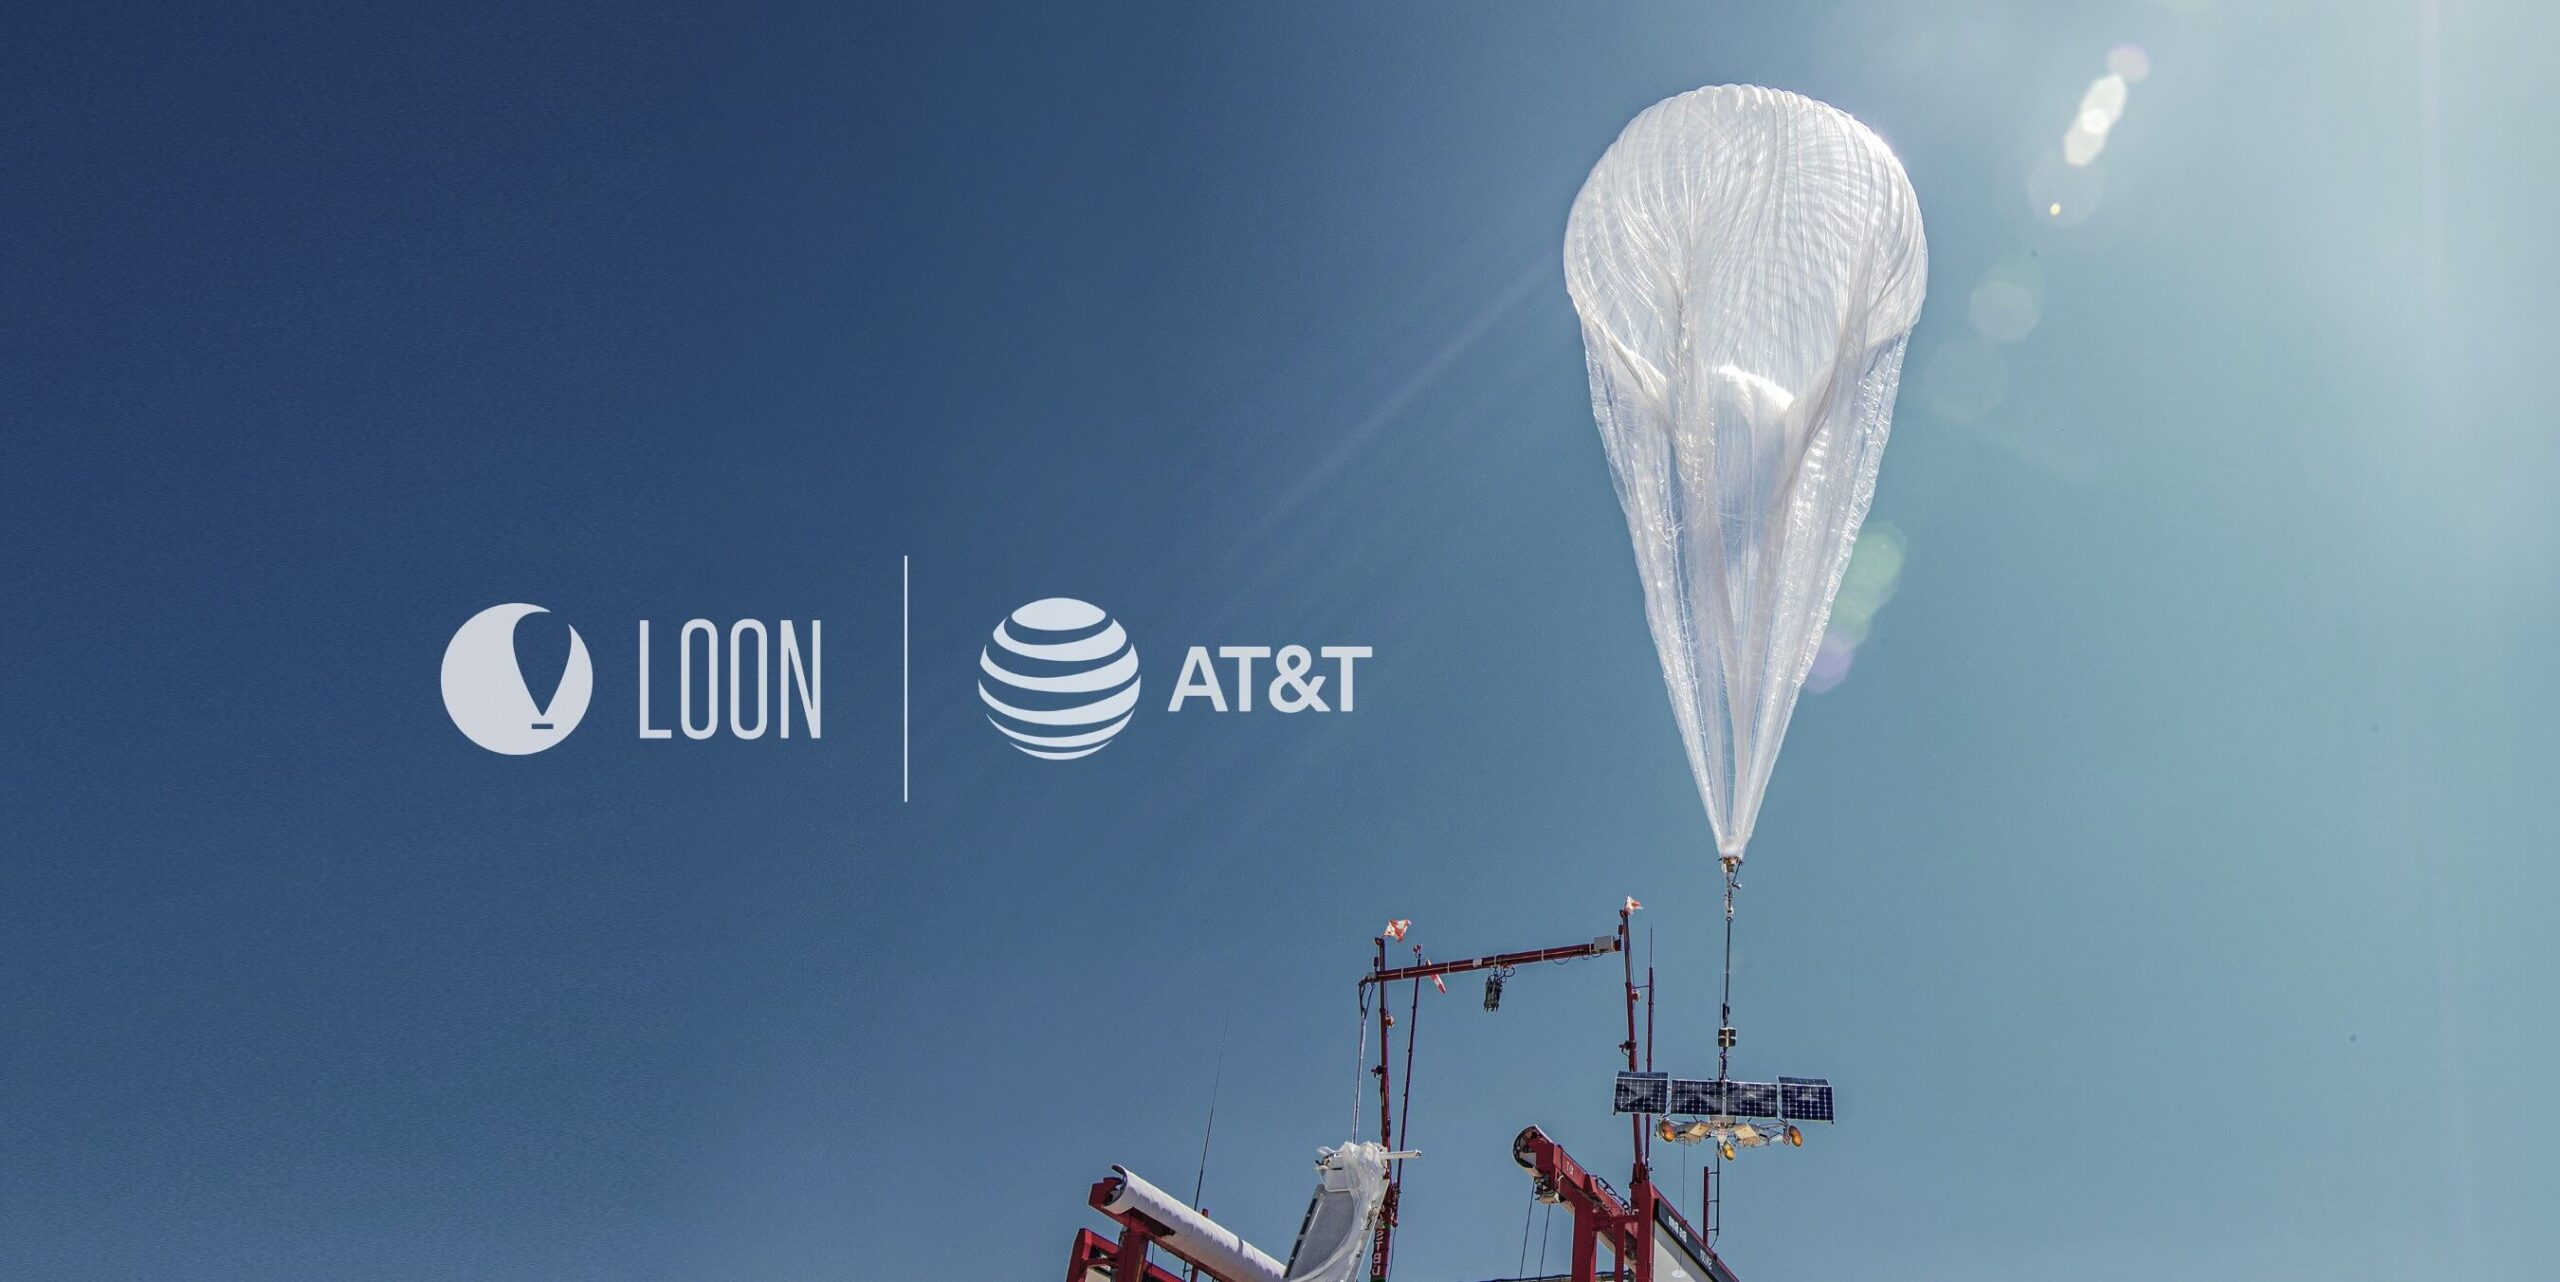 Loon partners with AT&T on disaster preparedness